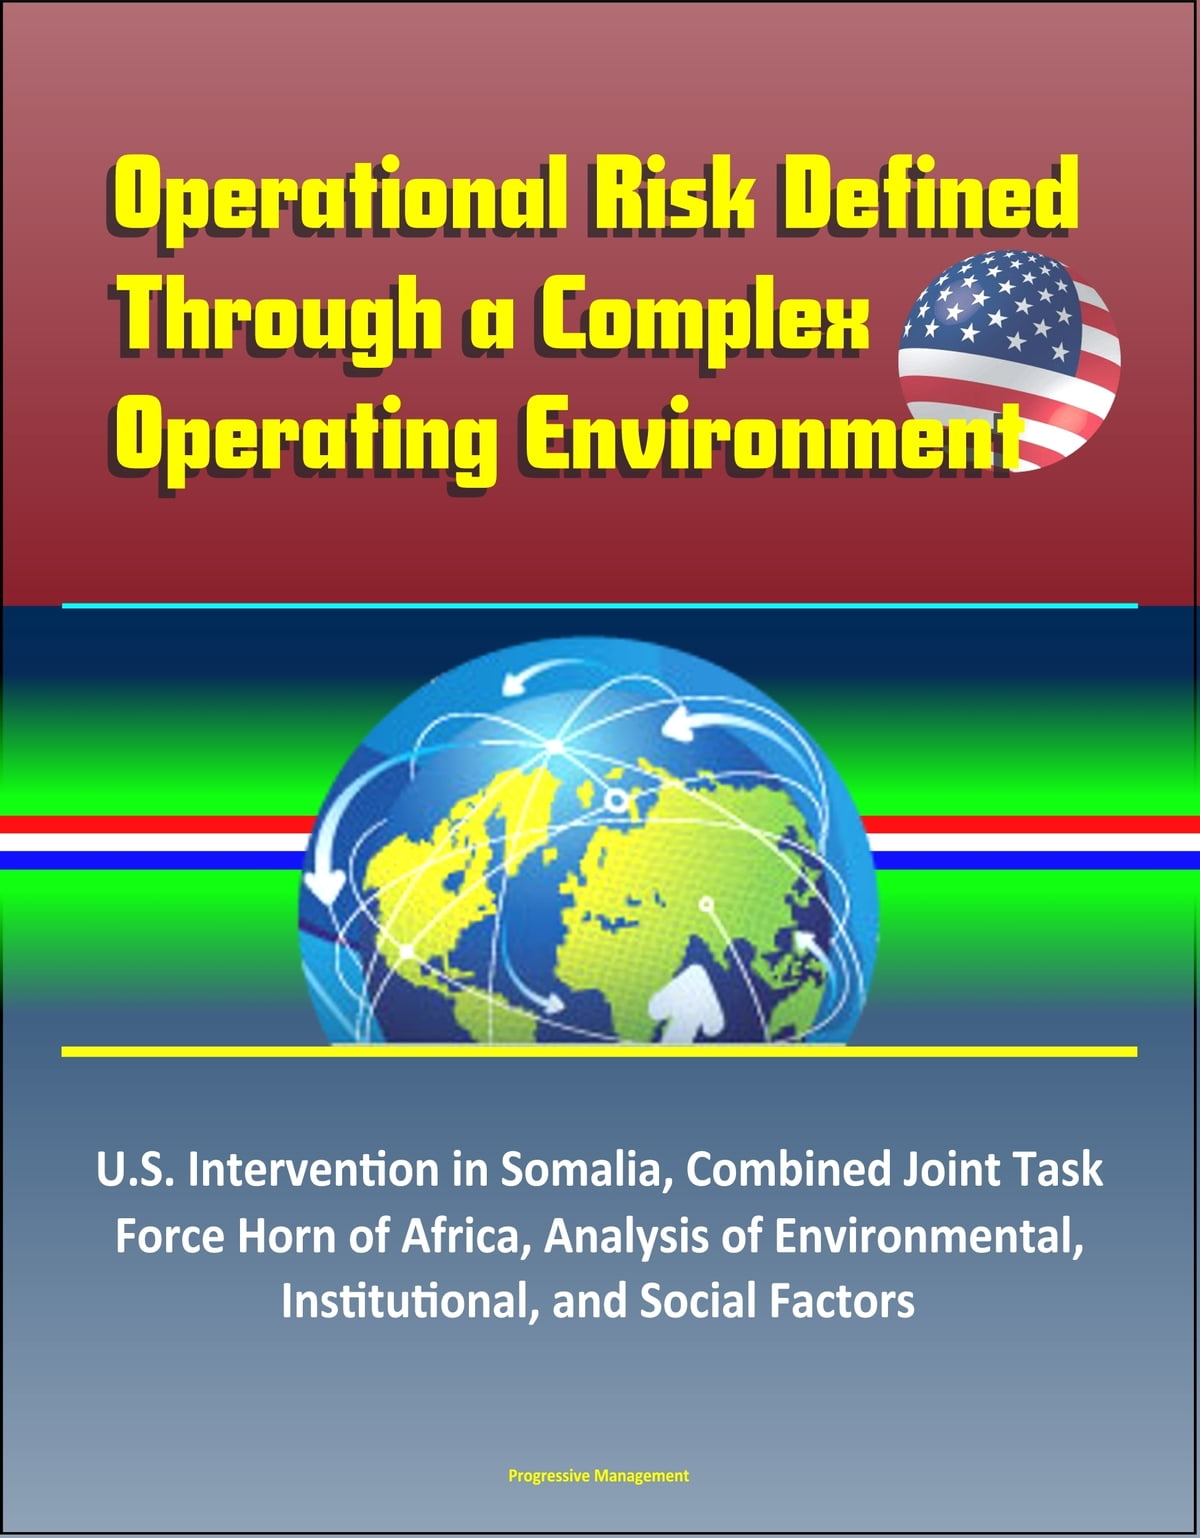 Operational Risk Defined Through a Complex Operating Environment: U.S. Intervention in Somalia, Analysis ...